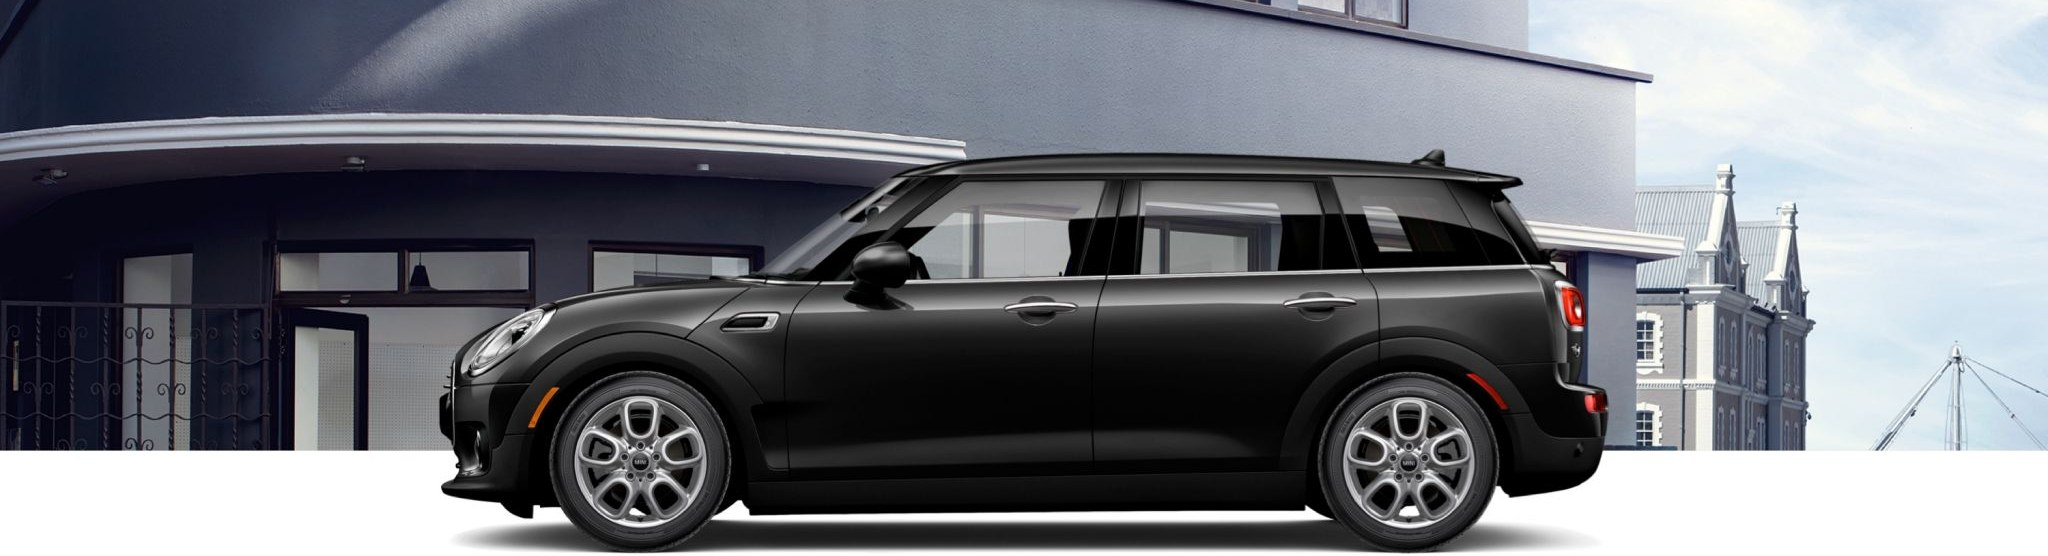 2018 MINI Clubman black side view